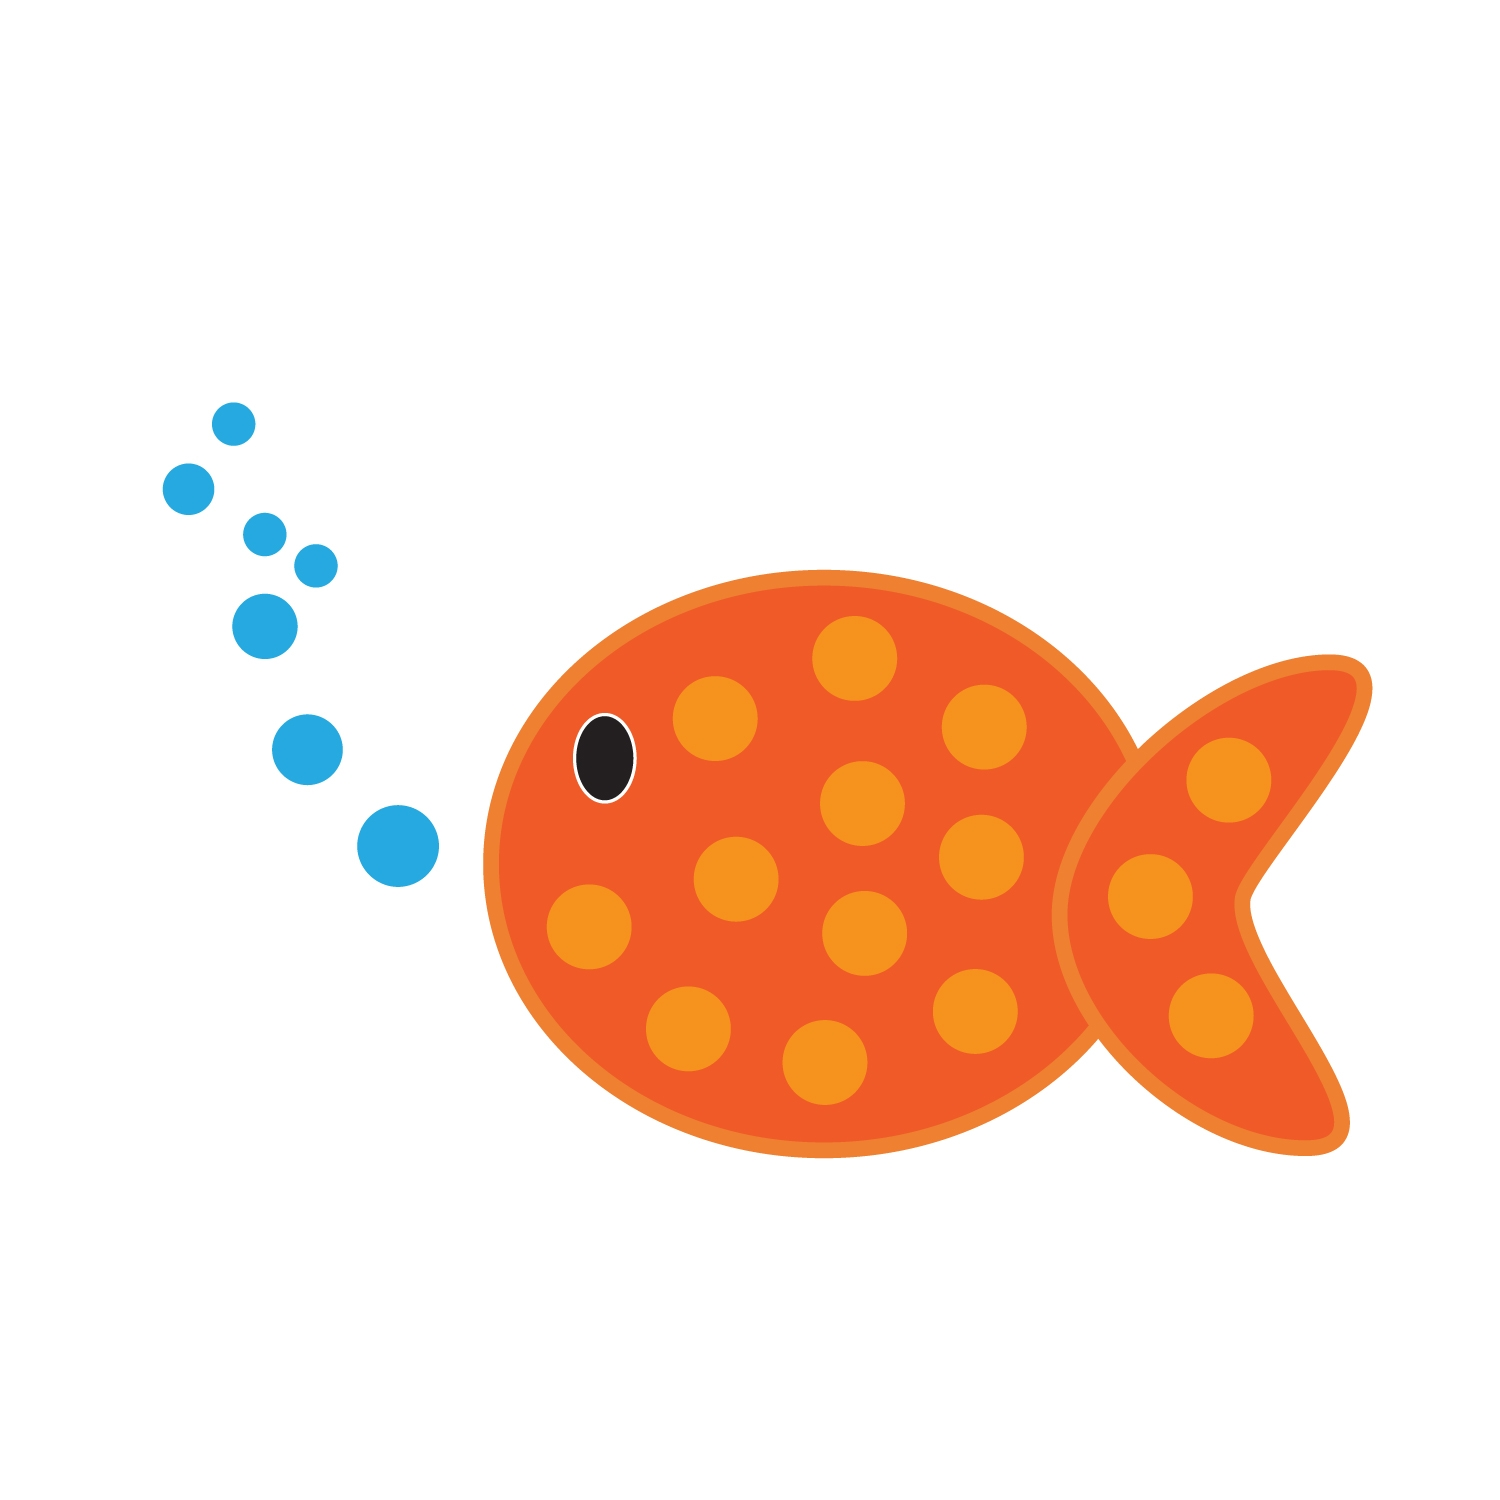 Small Fish Clipart at GetDrawings.com | Free for personal use Small ...